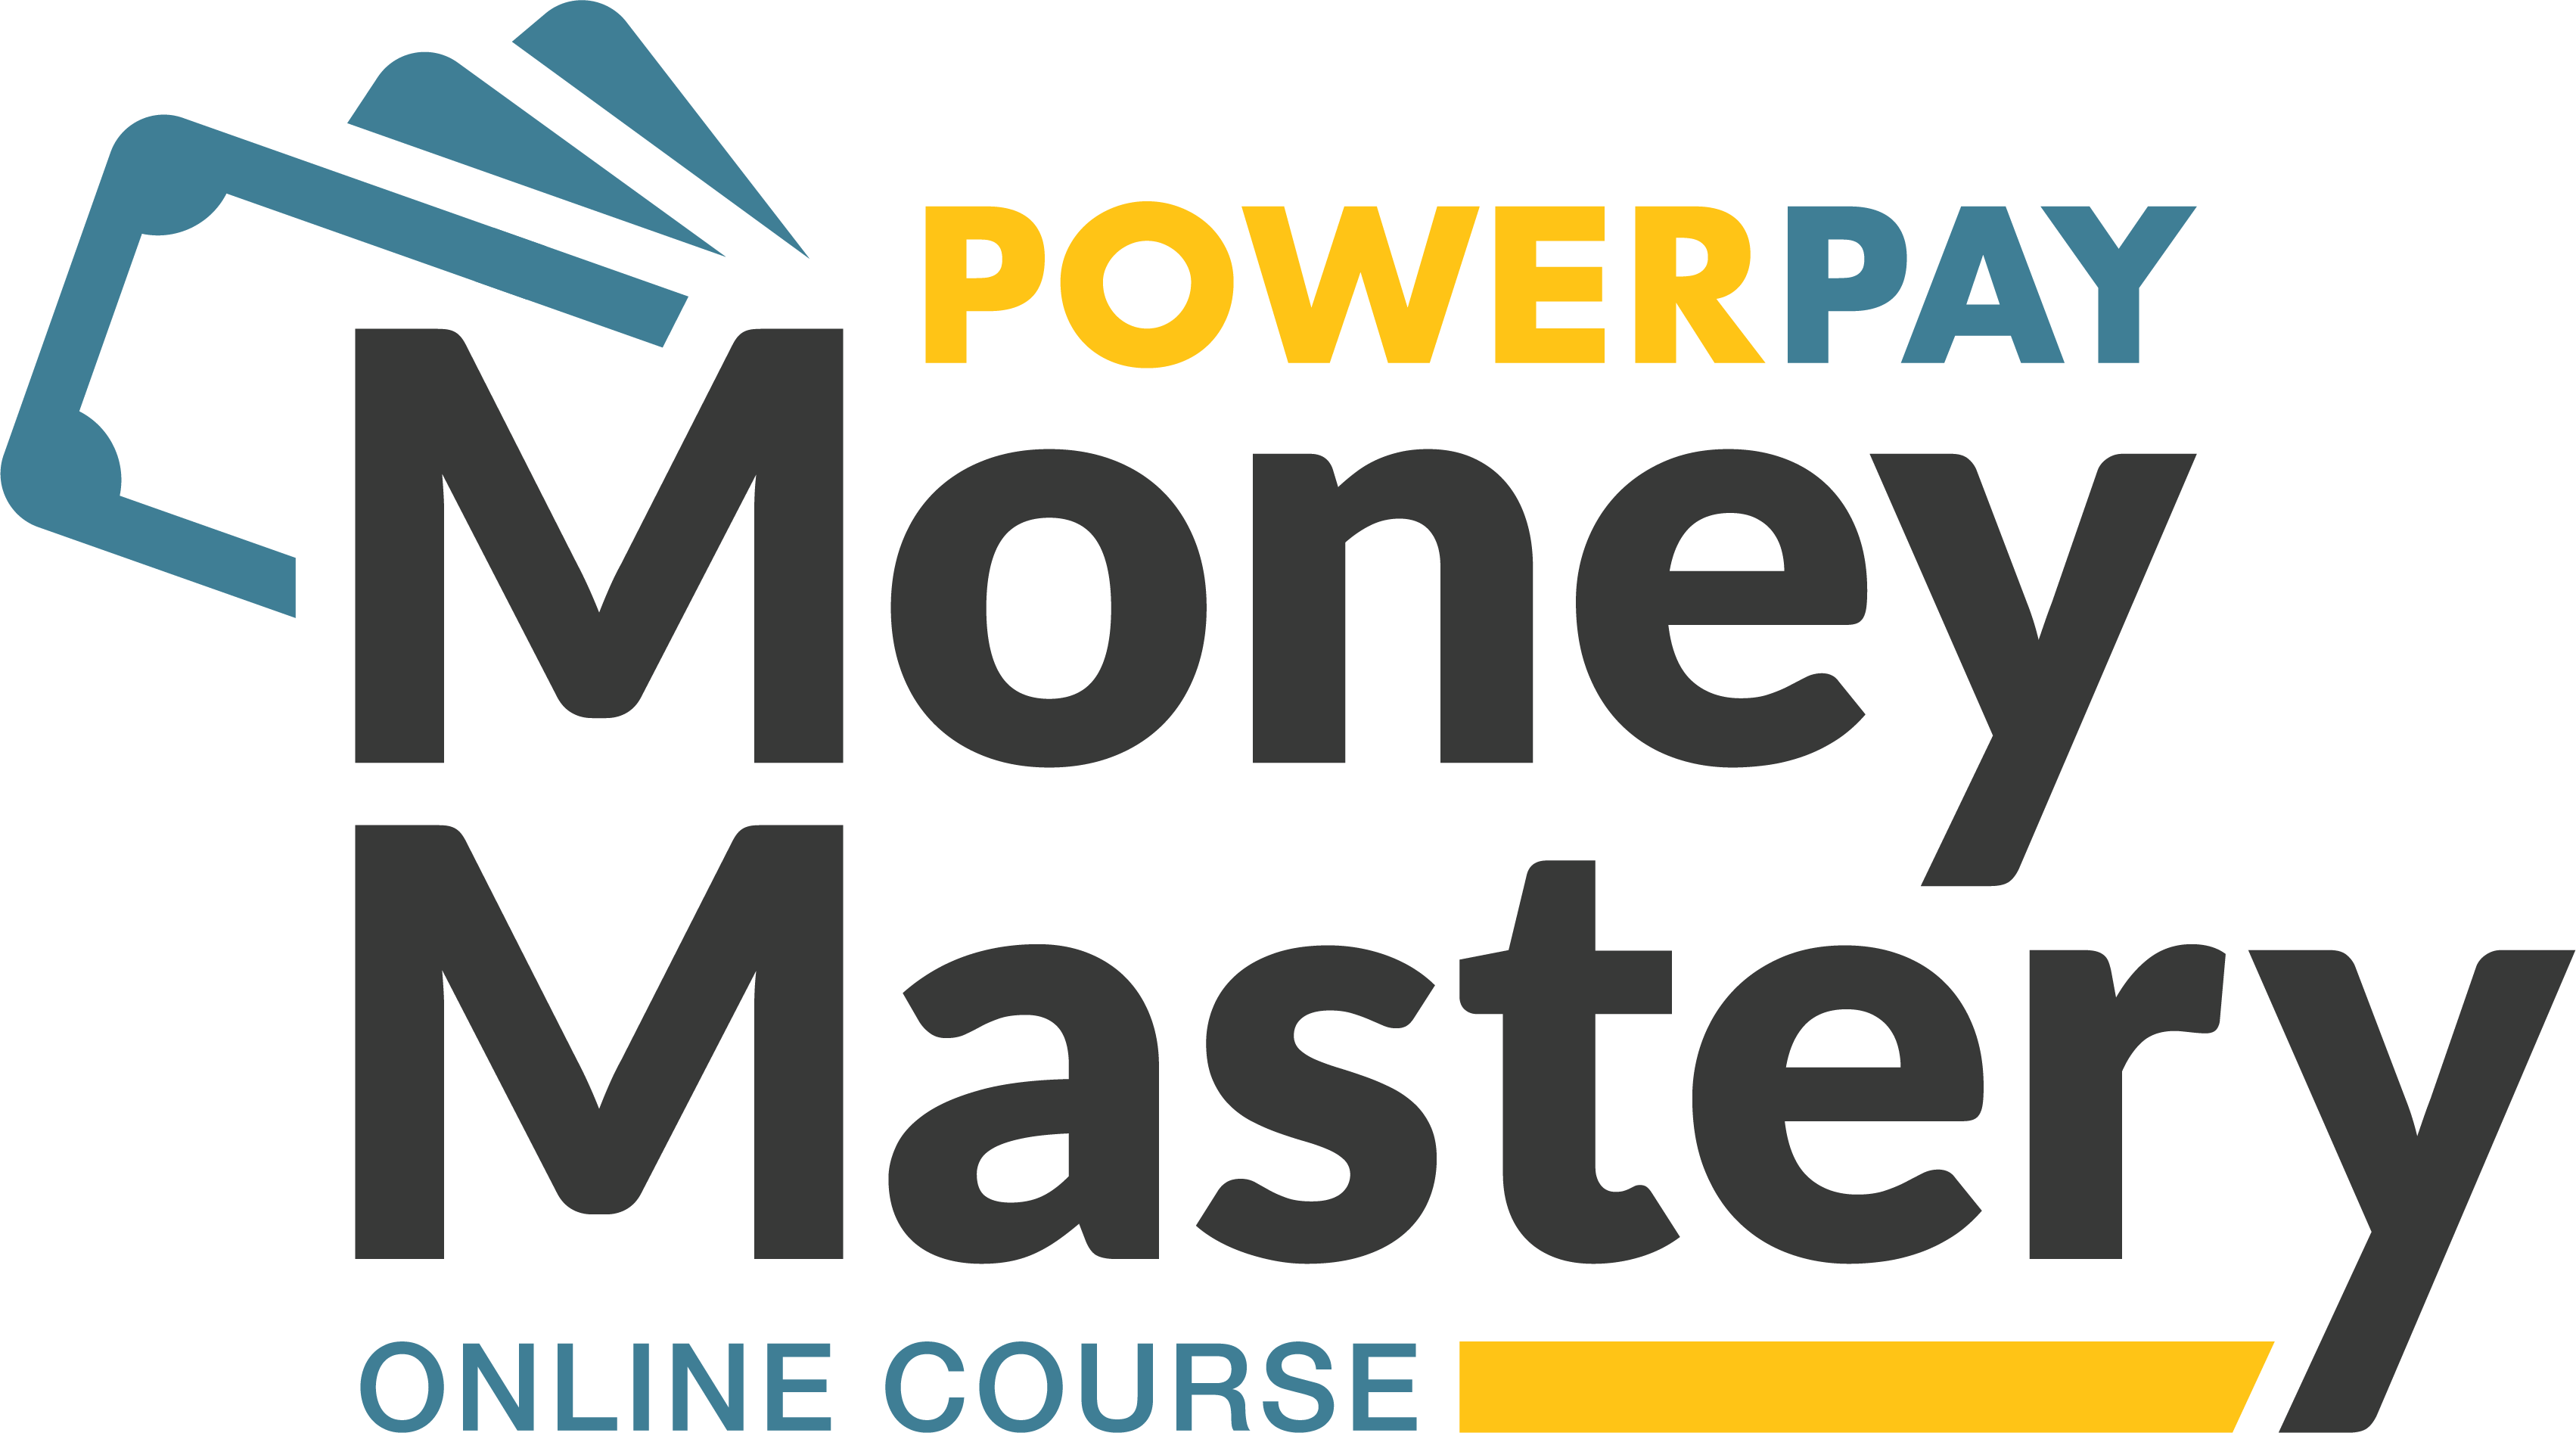 PowerPay Money Mastery Online Course